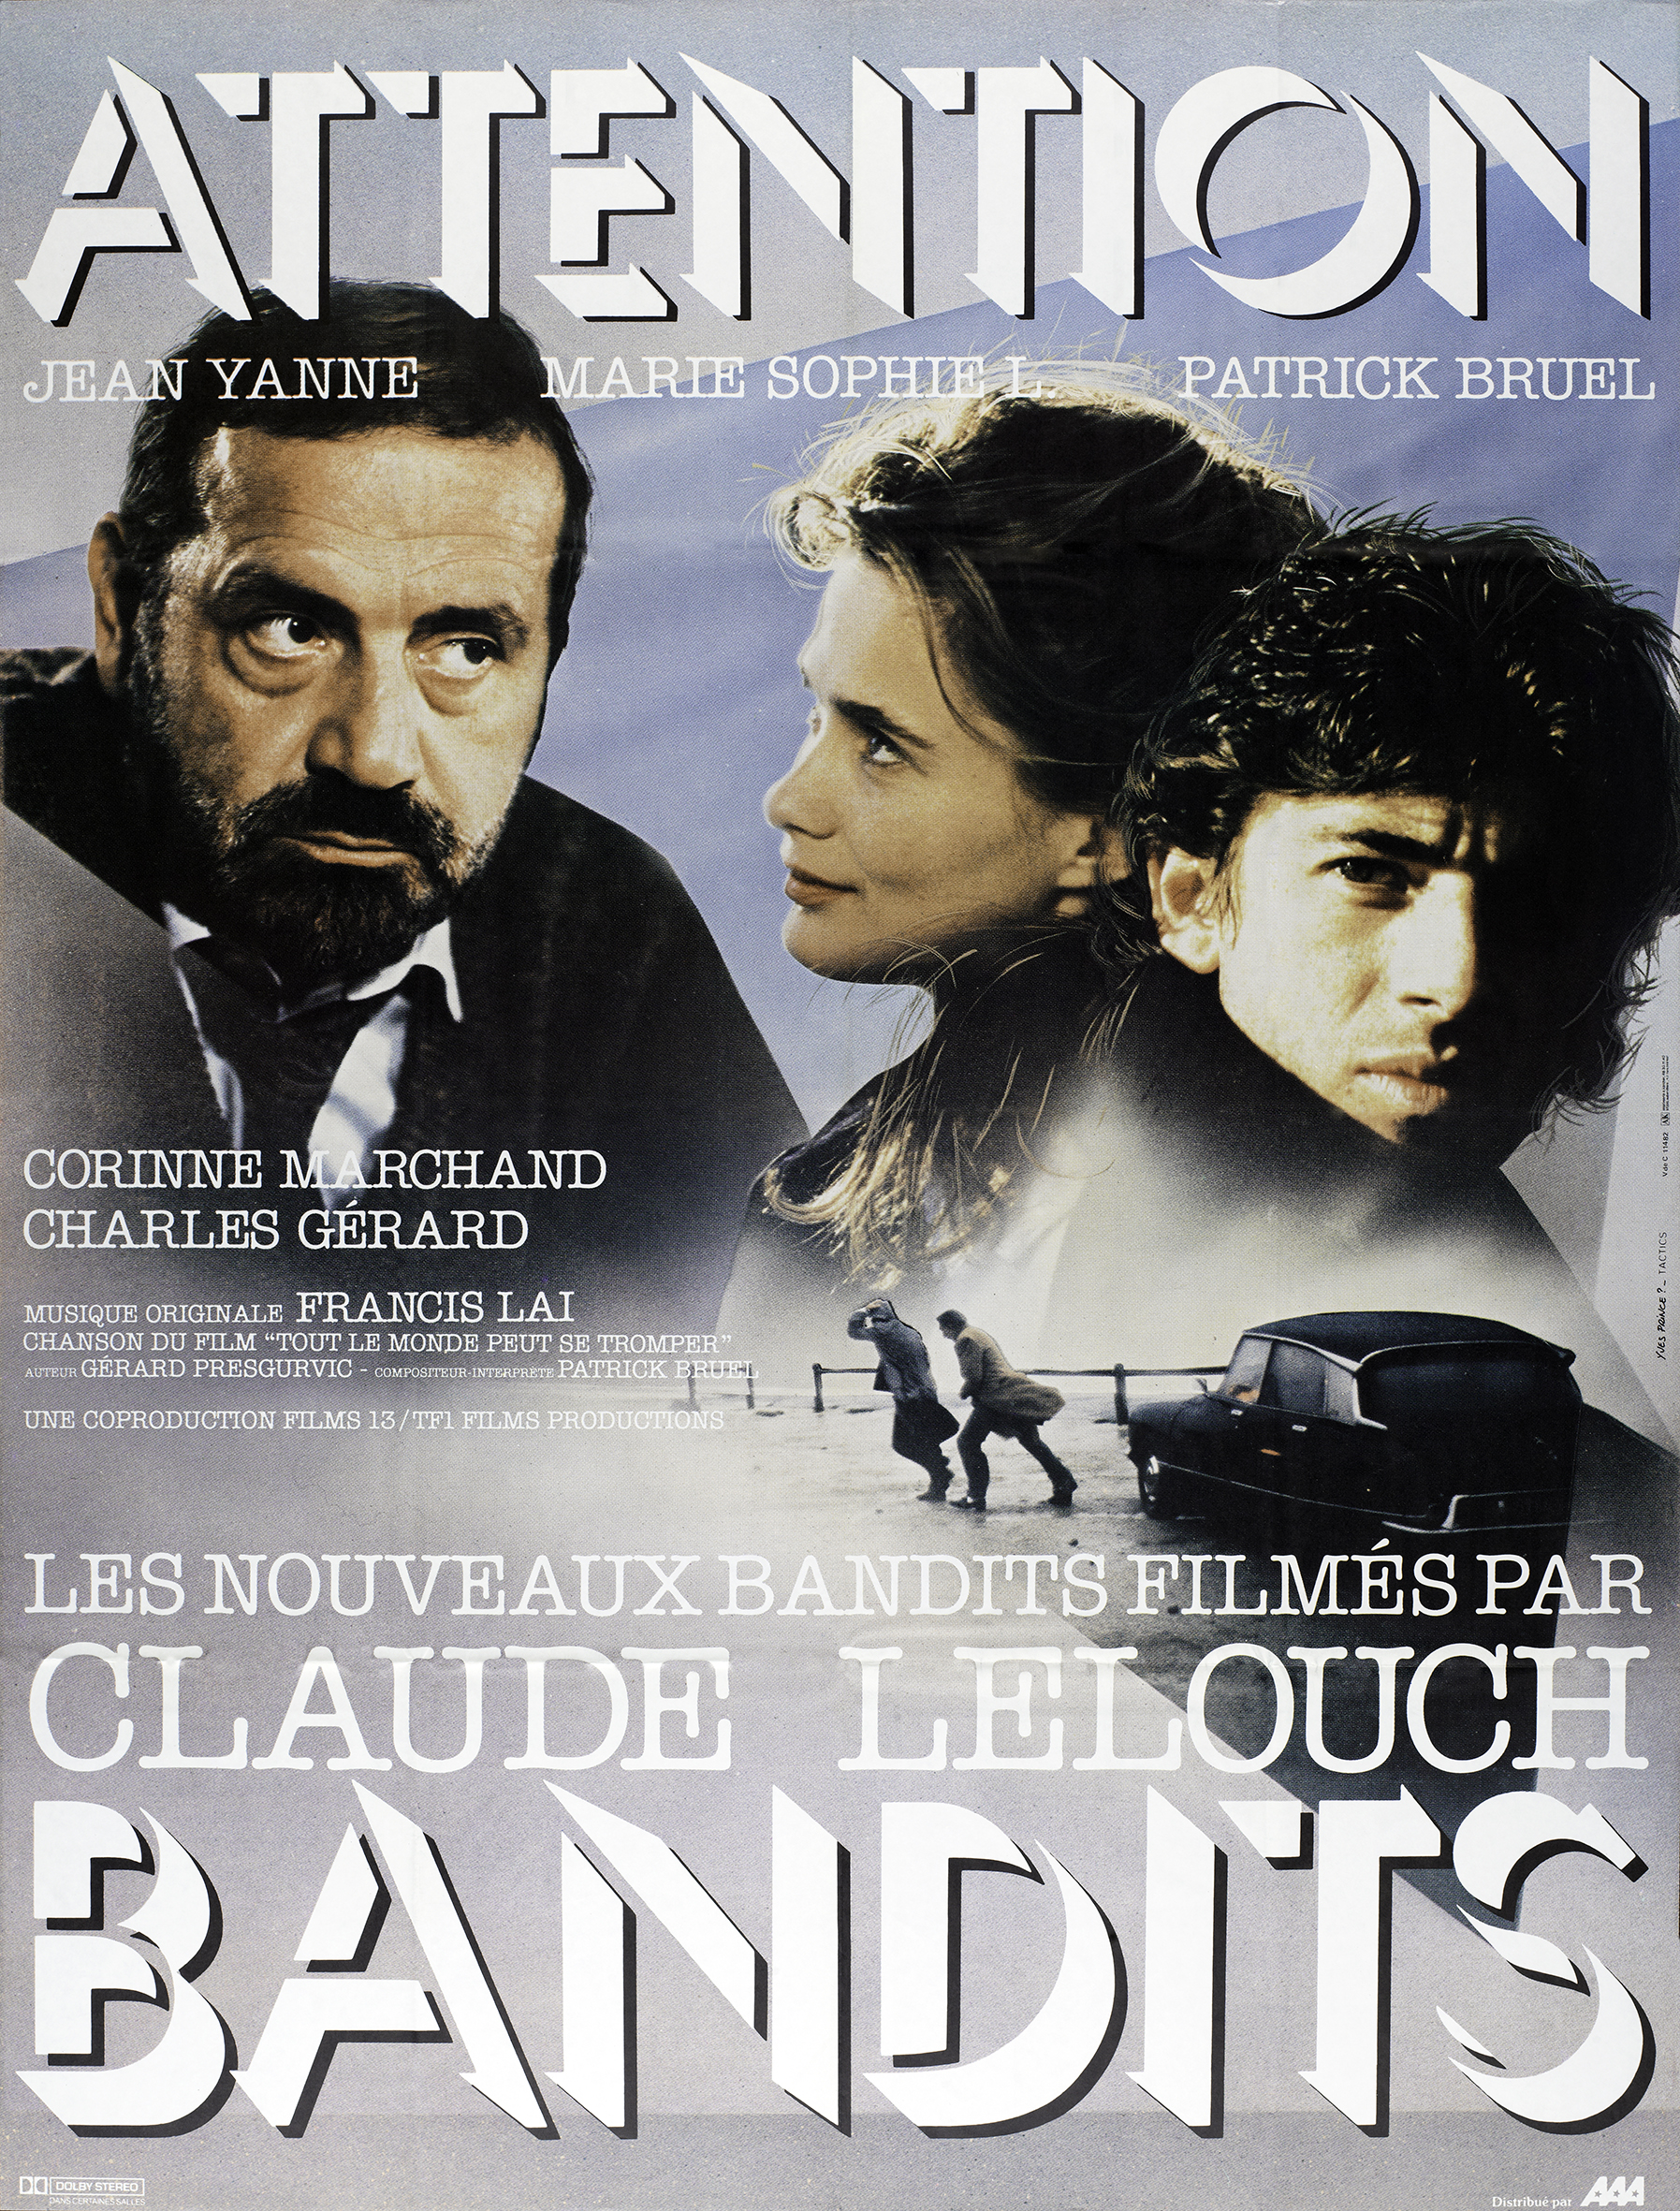 Patrick Bruel, Marie-Sophie L., and Jean Yanne in Attention bandits! (1986)